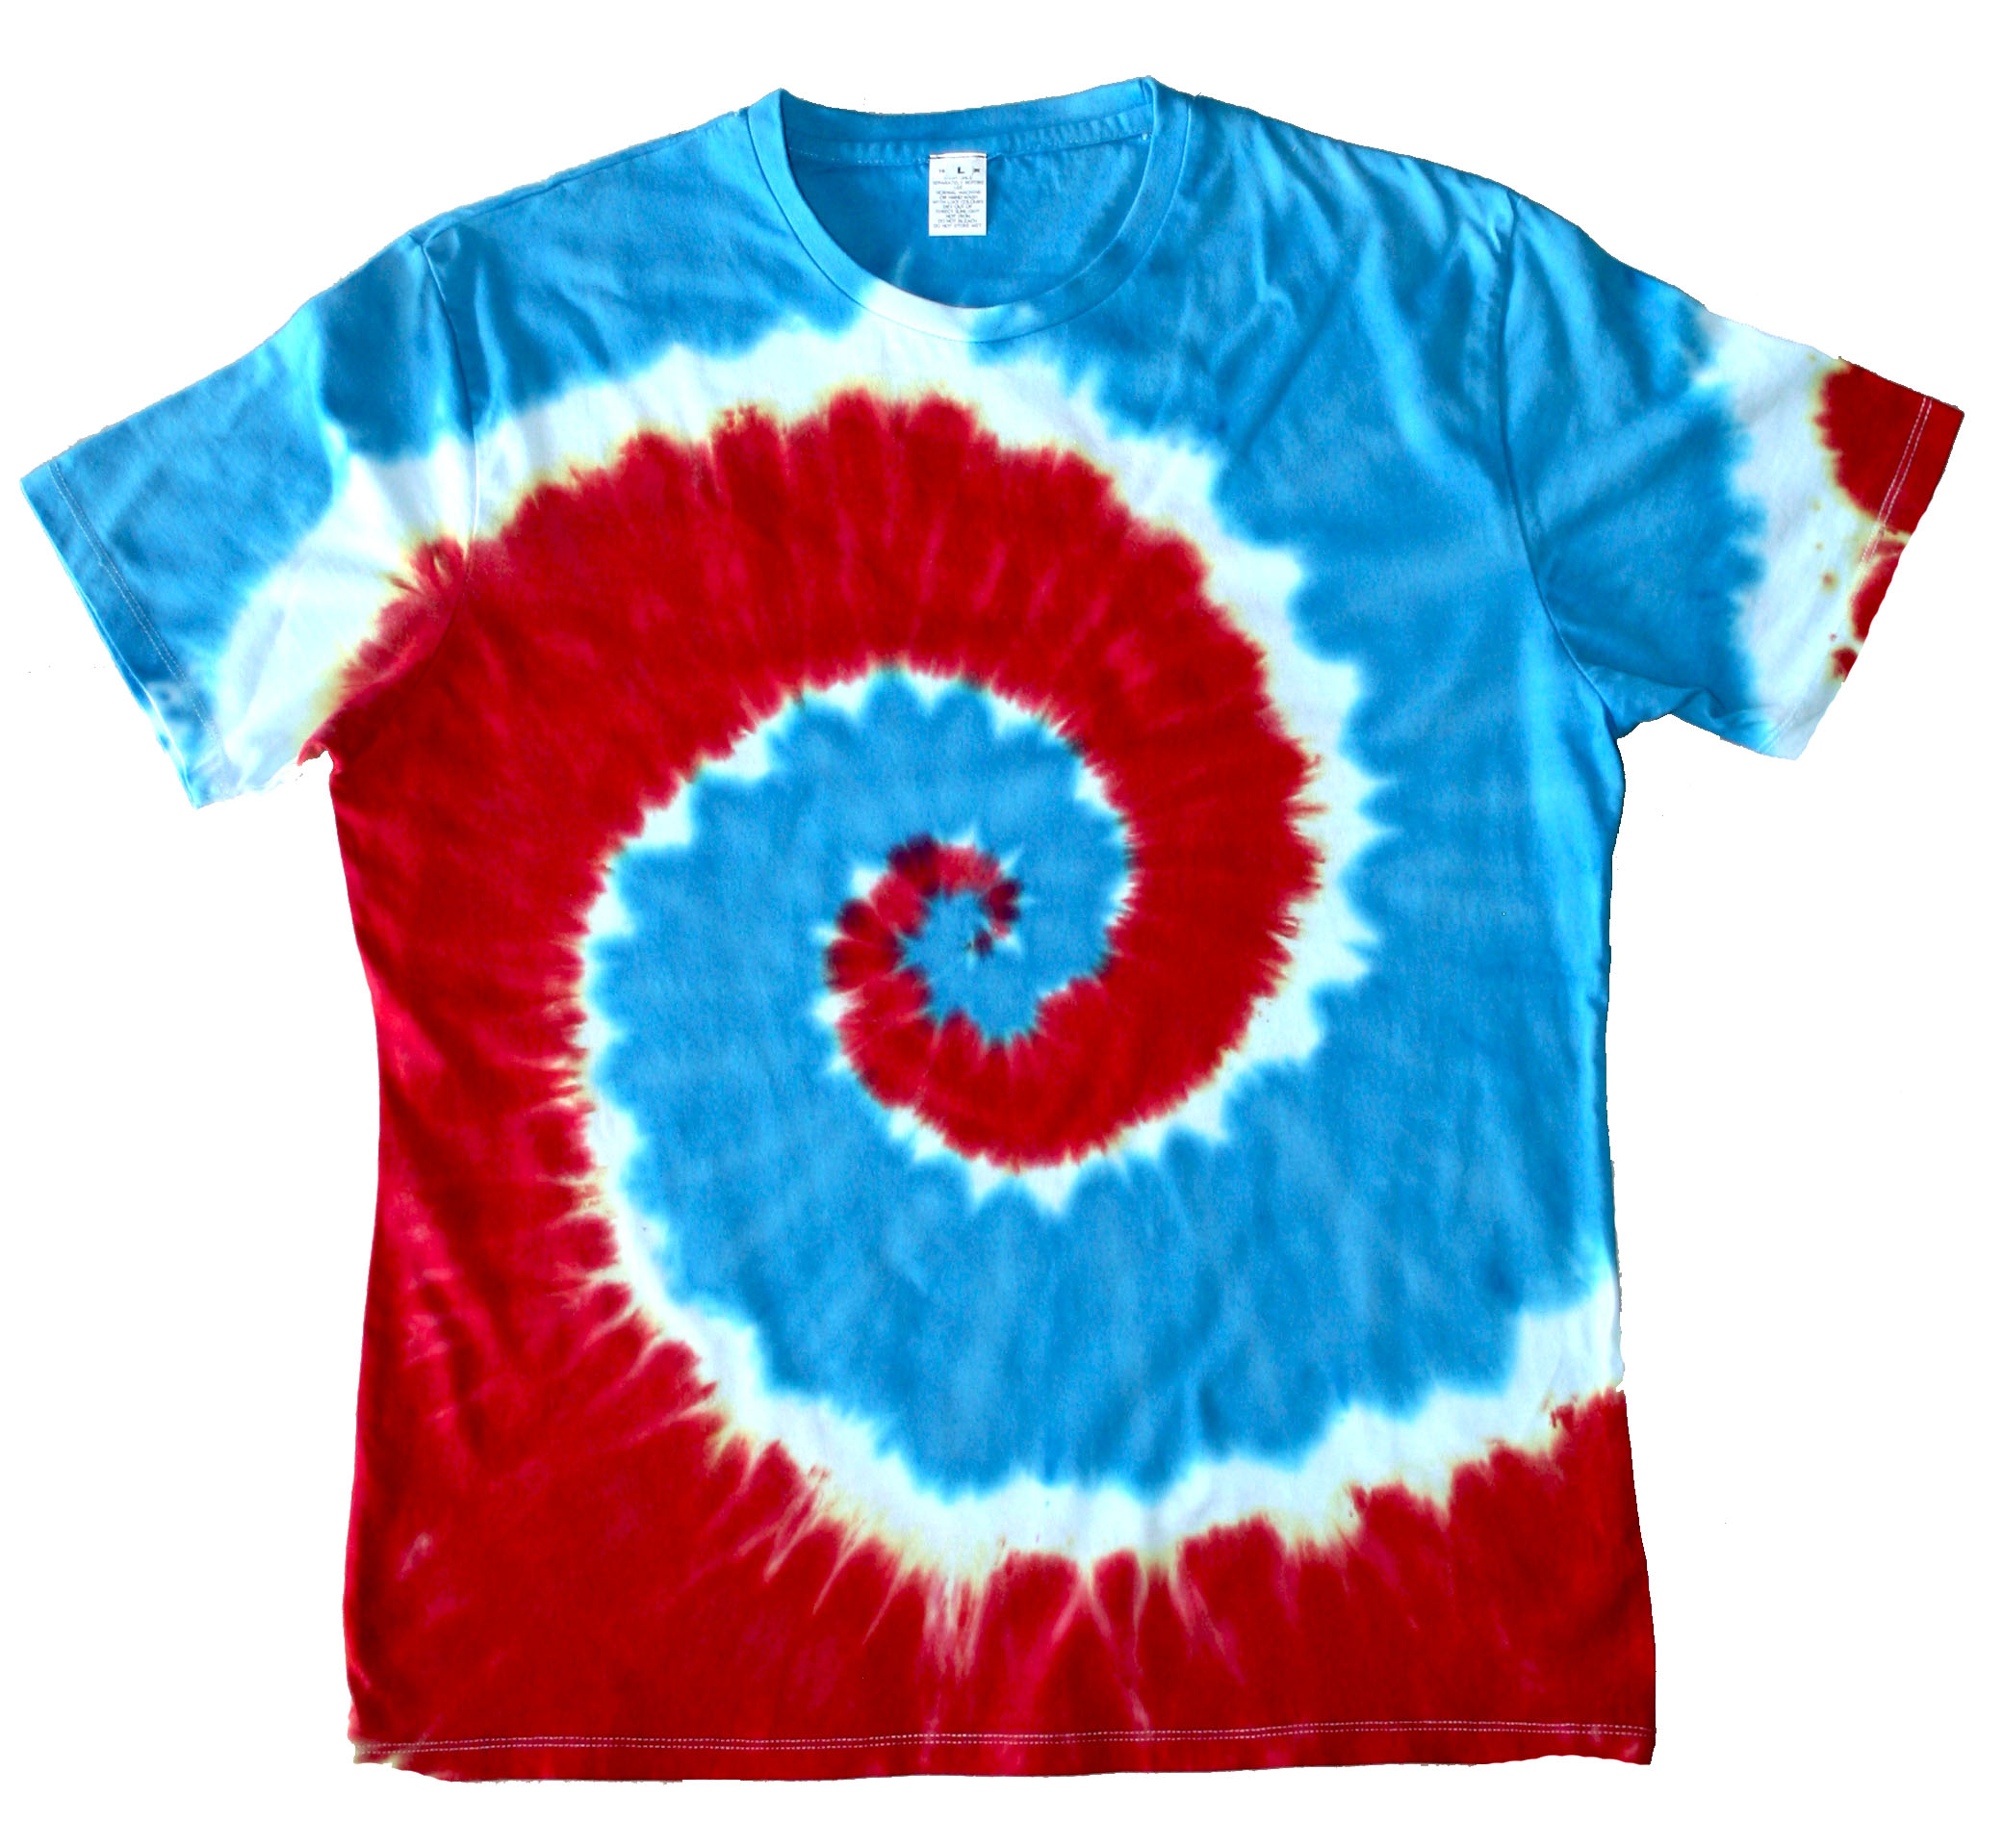 red white and blue tie dye shirts photo - 1